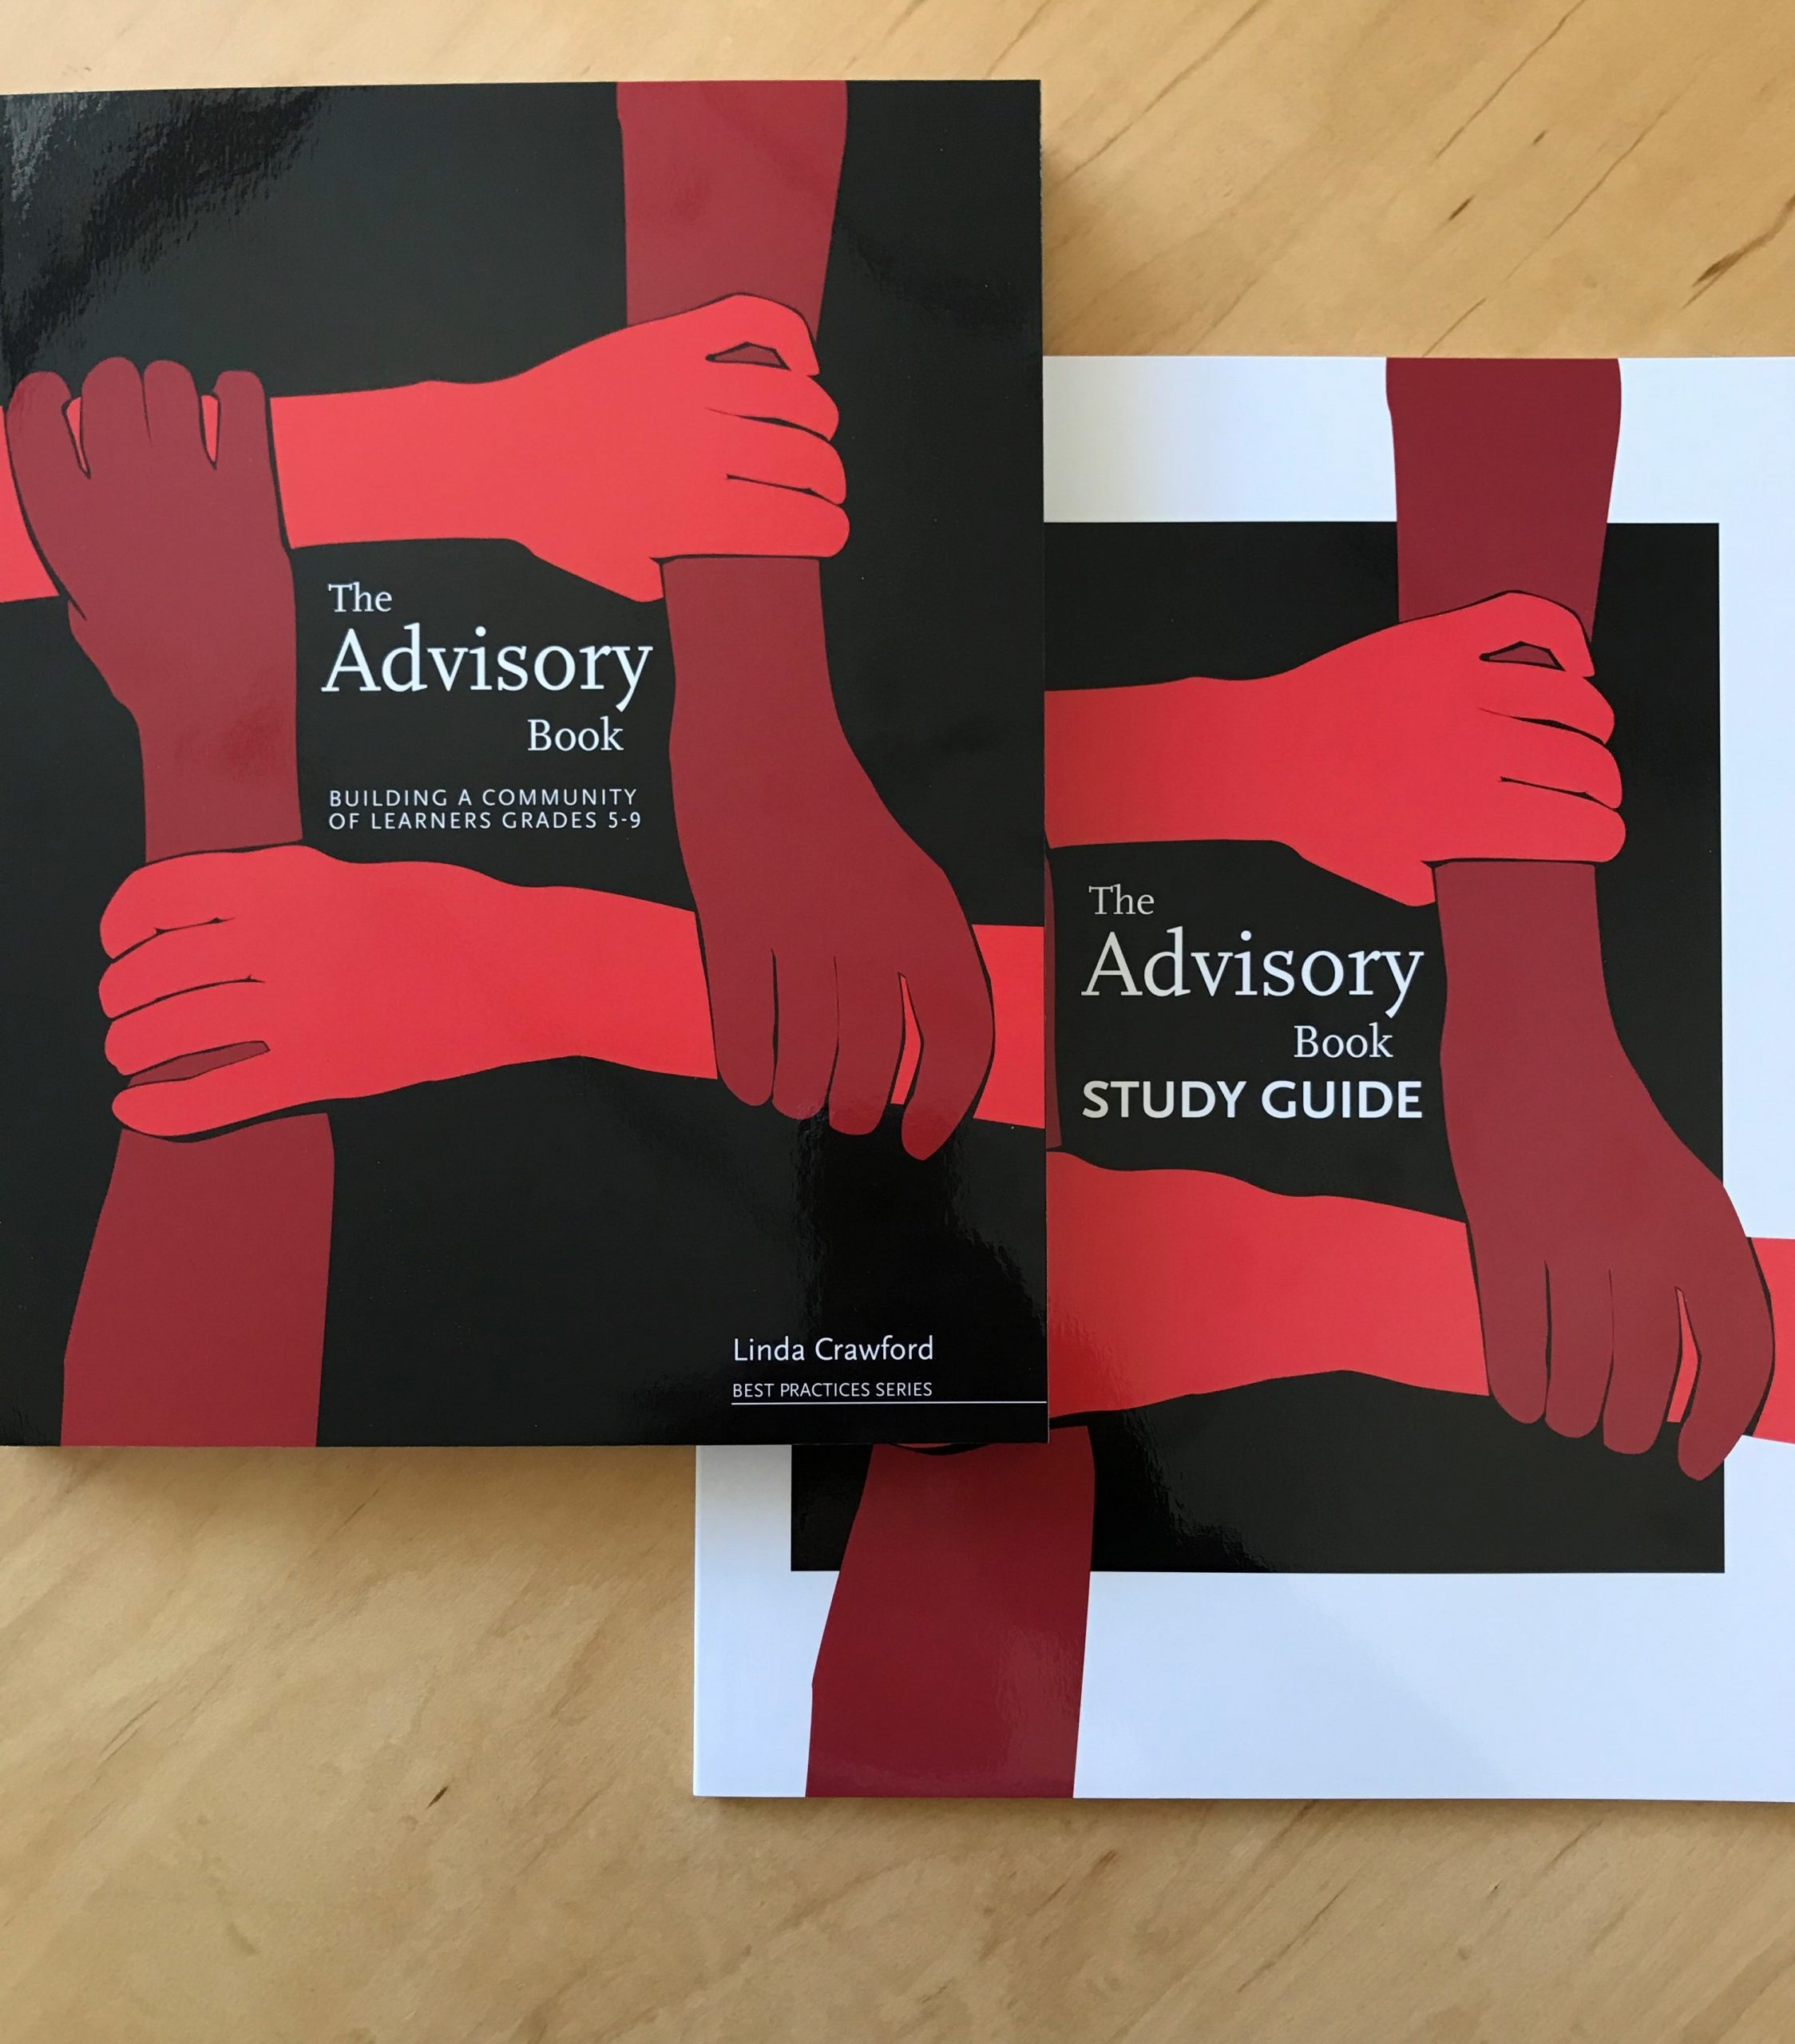 Advisory Book Set: Advisory Book and Advisory Book Study Guide